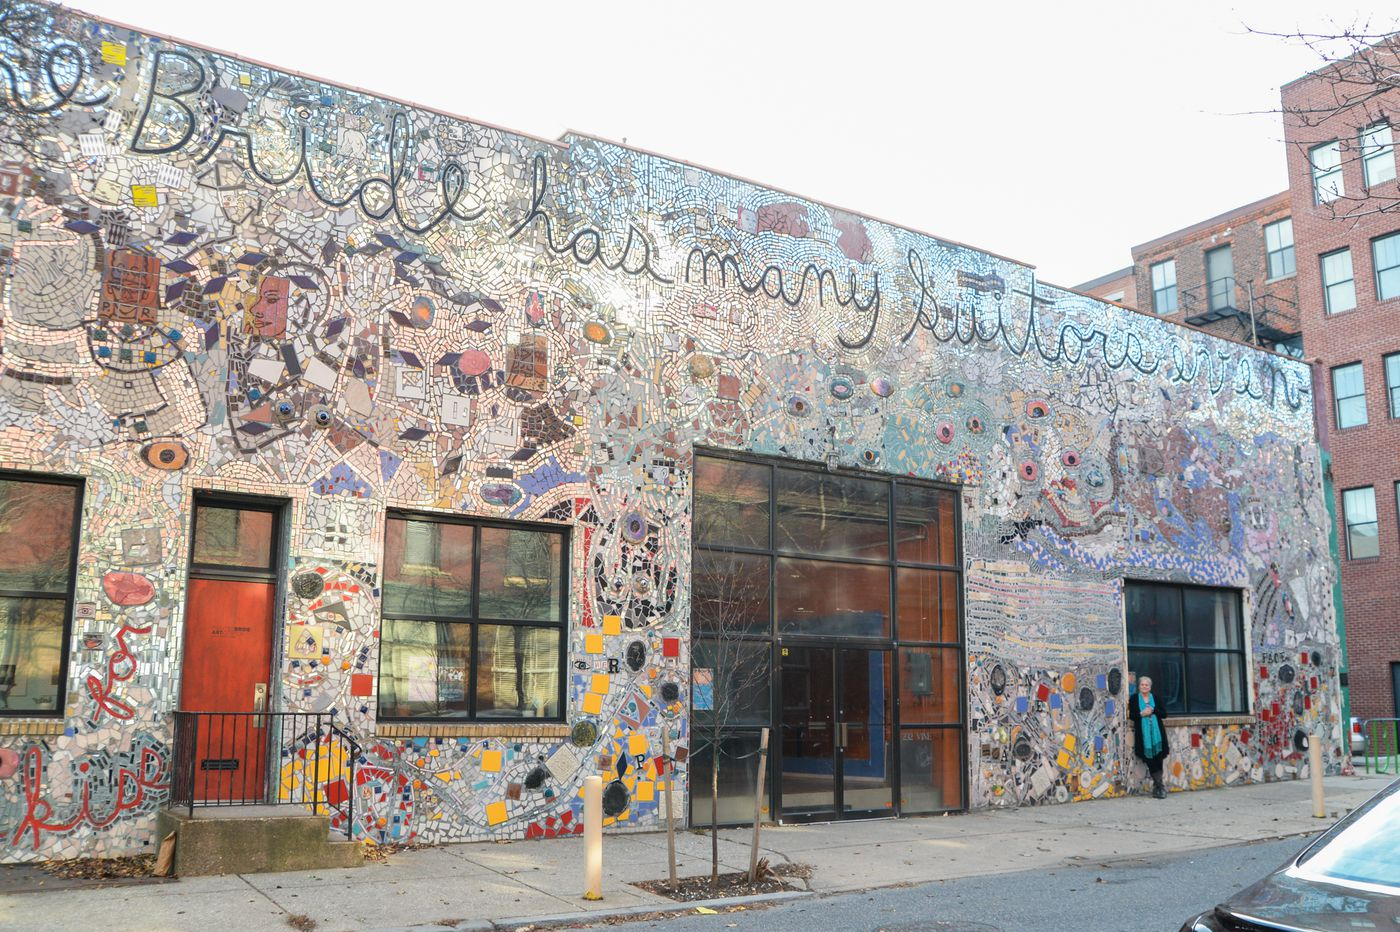 Painted Bride and its Zagar murals deserve historic designation, panel finds